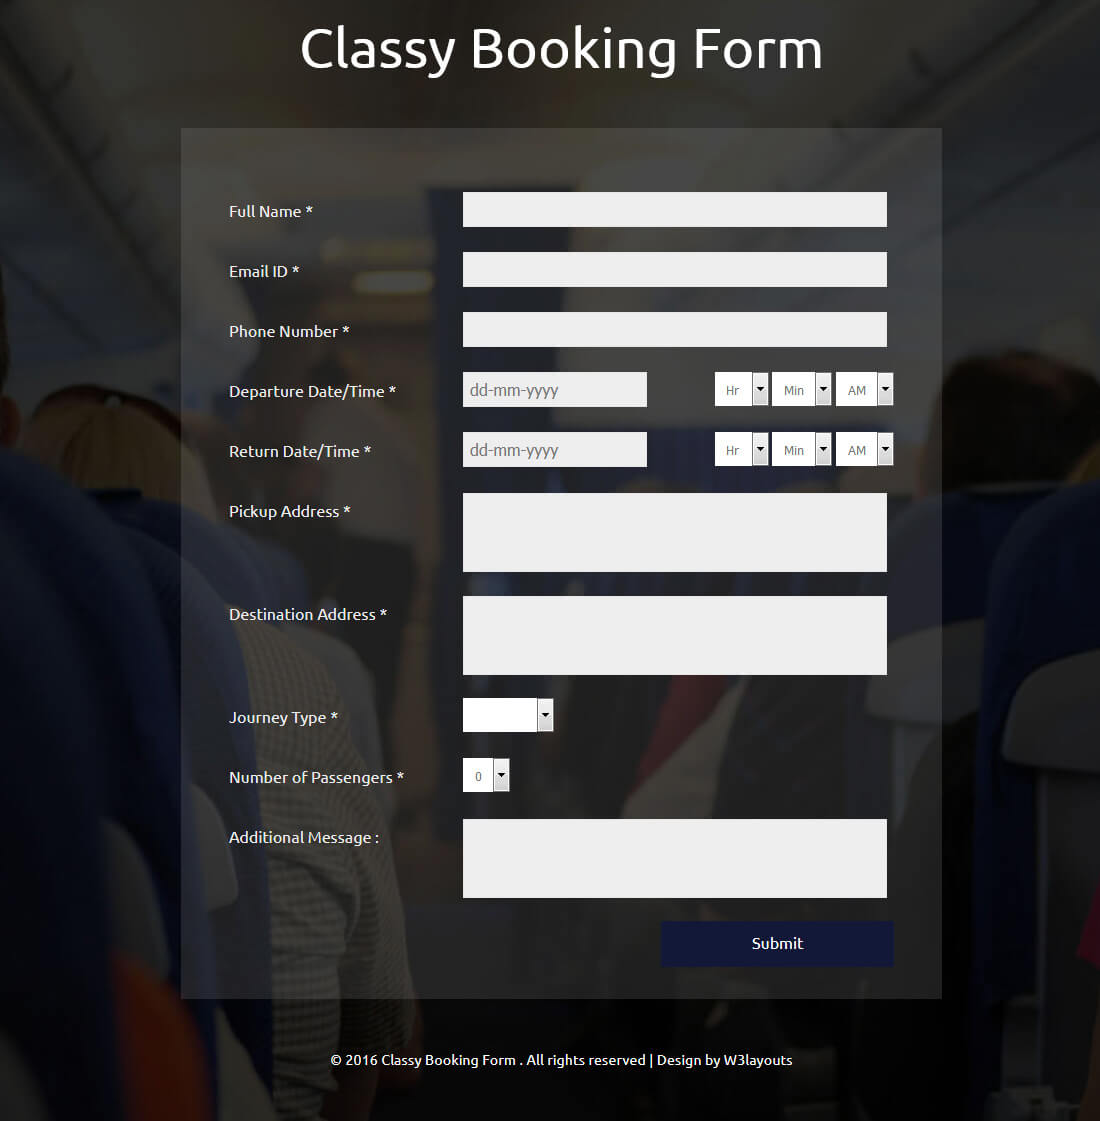 classy-booking-form